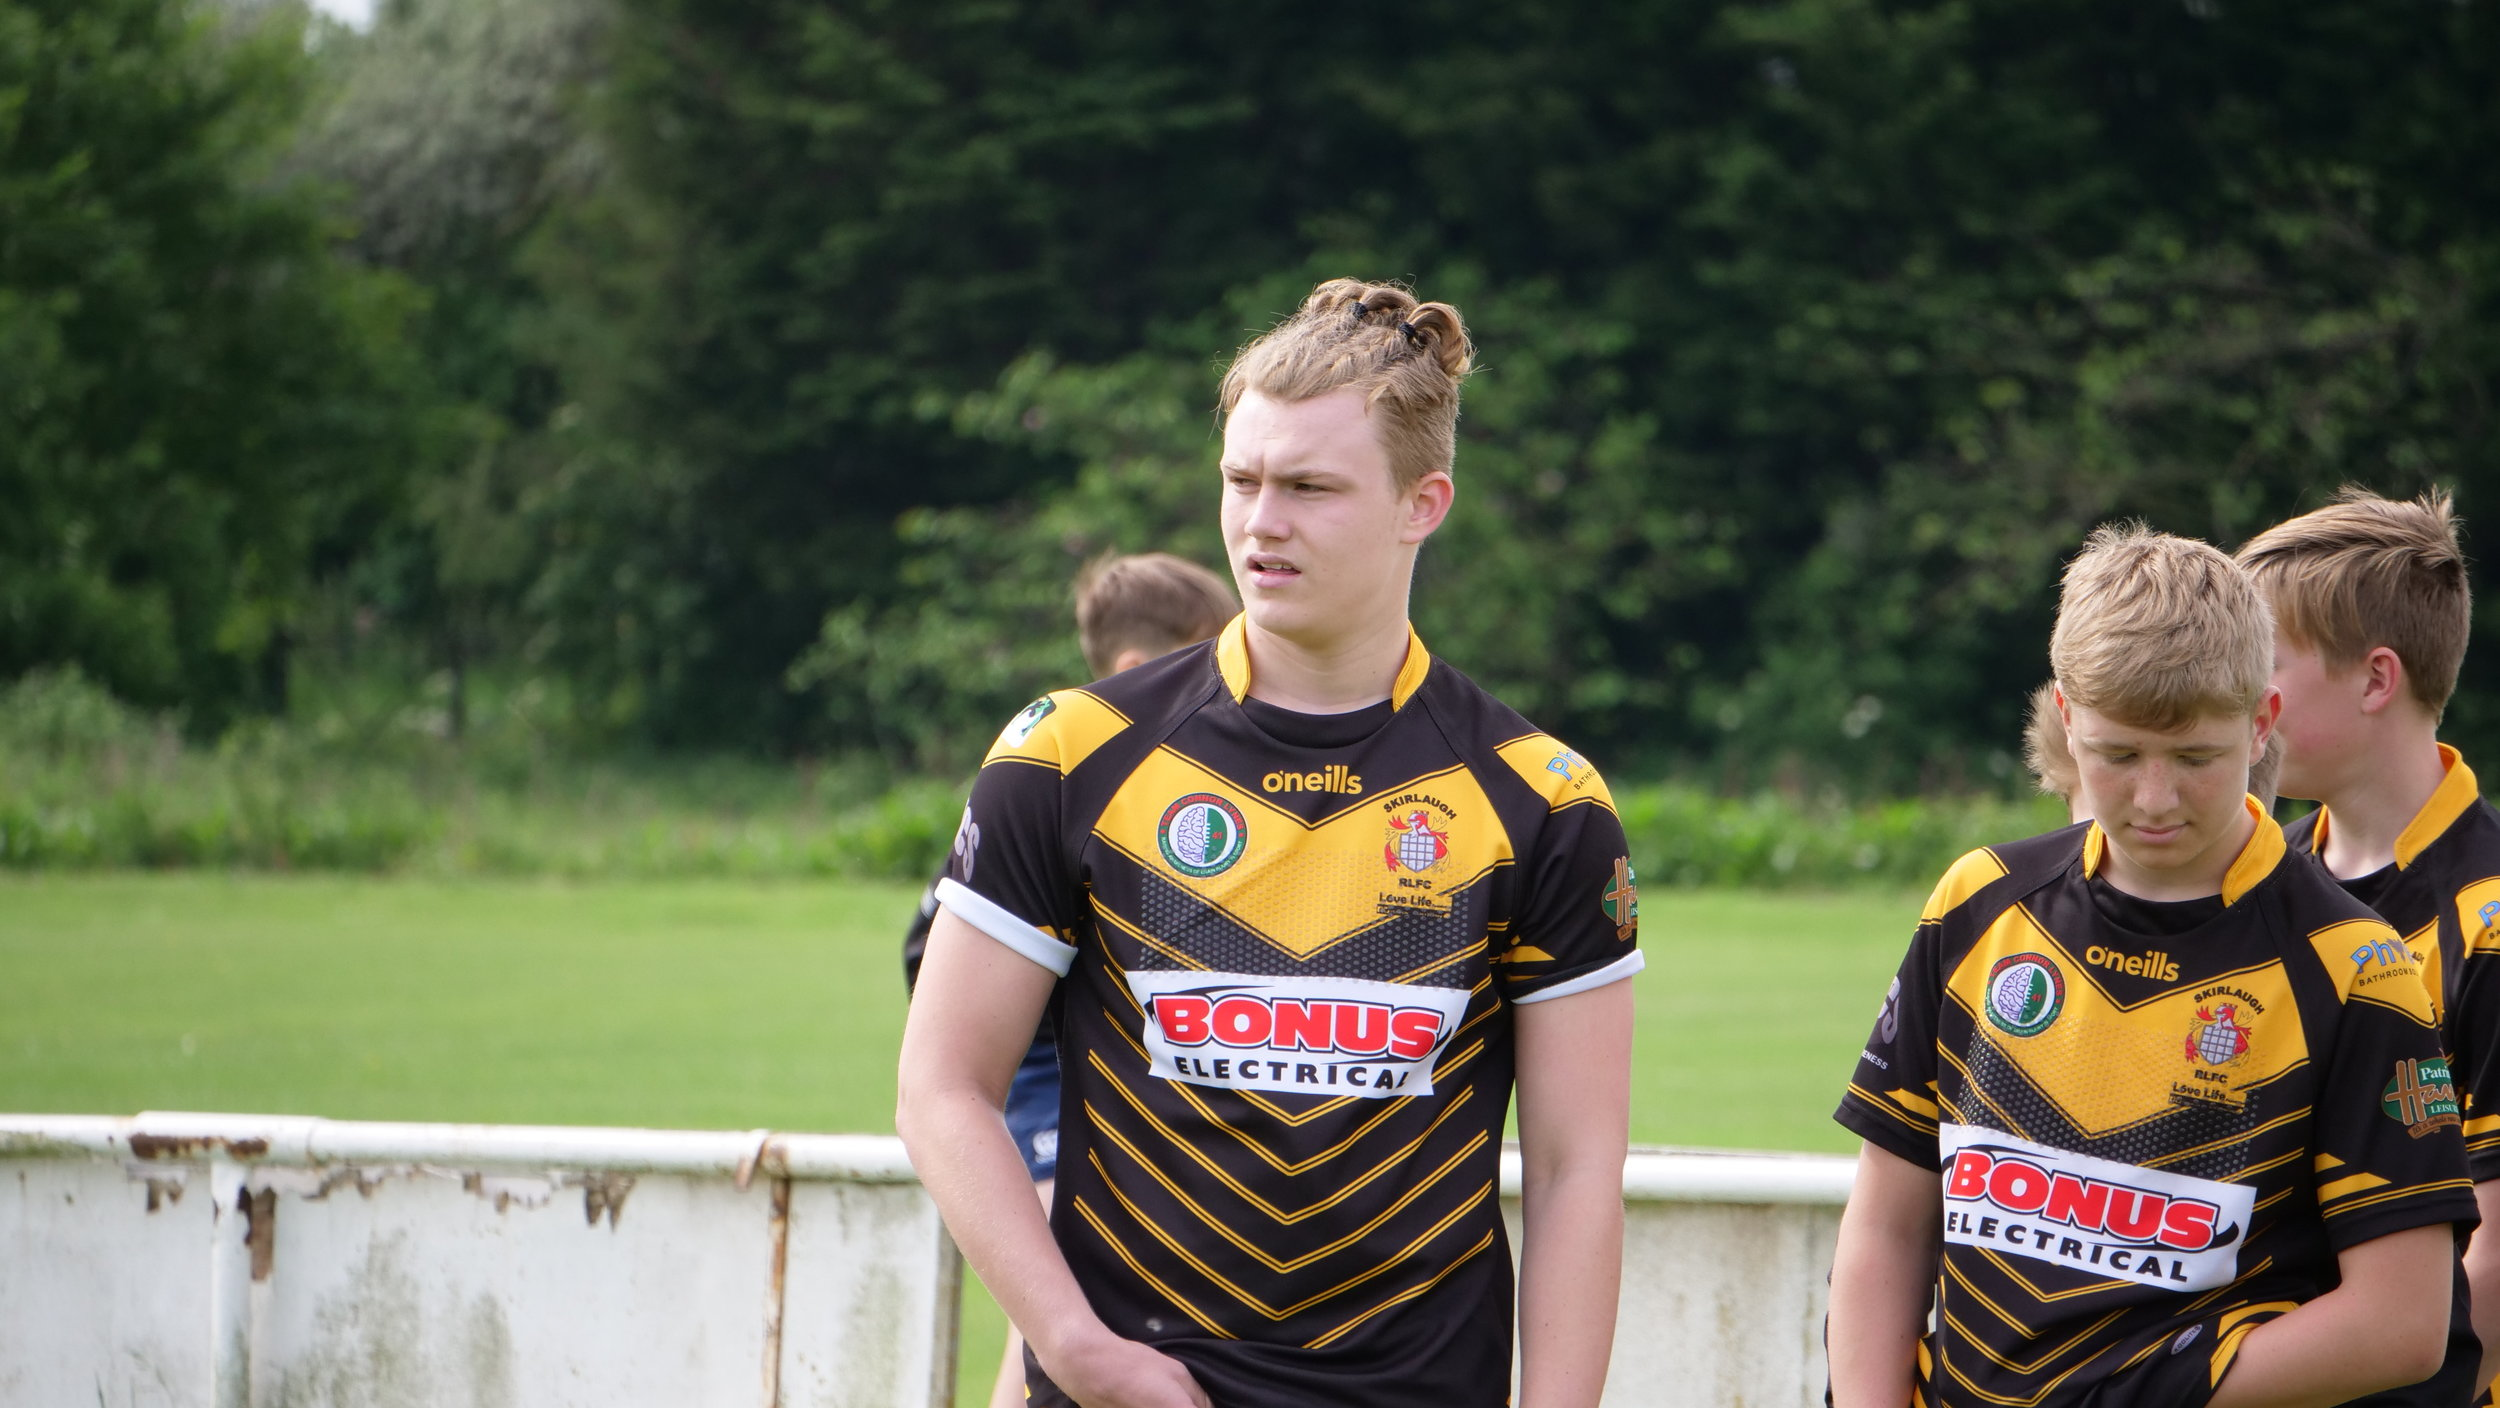 Connor Barley (left) is a highly rated rugby player who has recently signed a 2-year scholarship with Hull Kingston Rovers